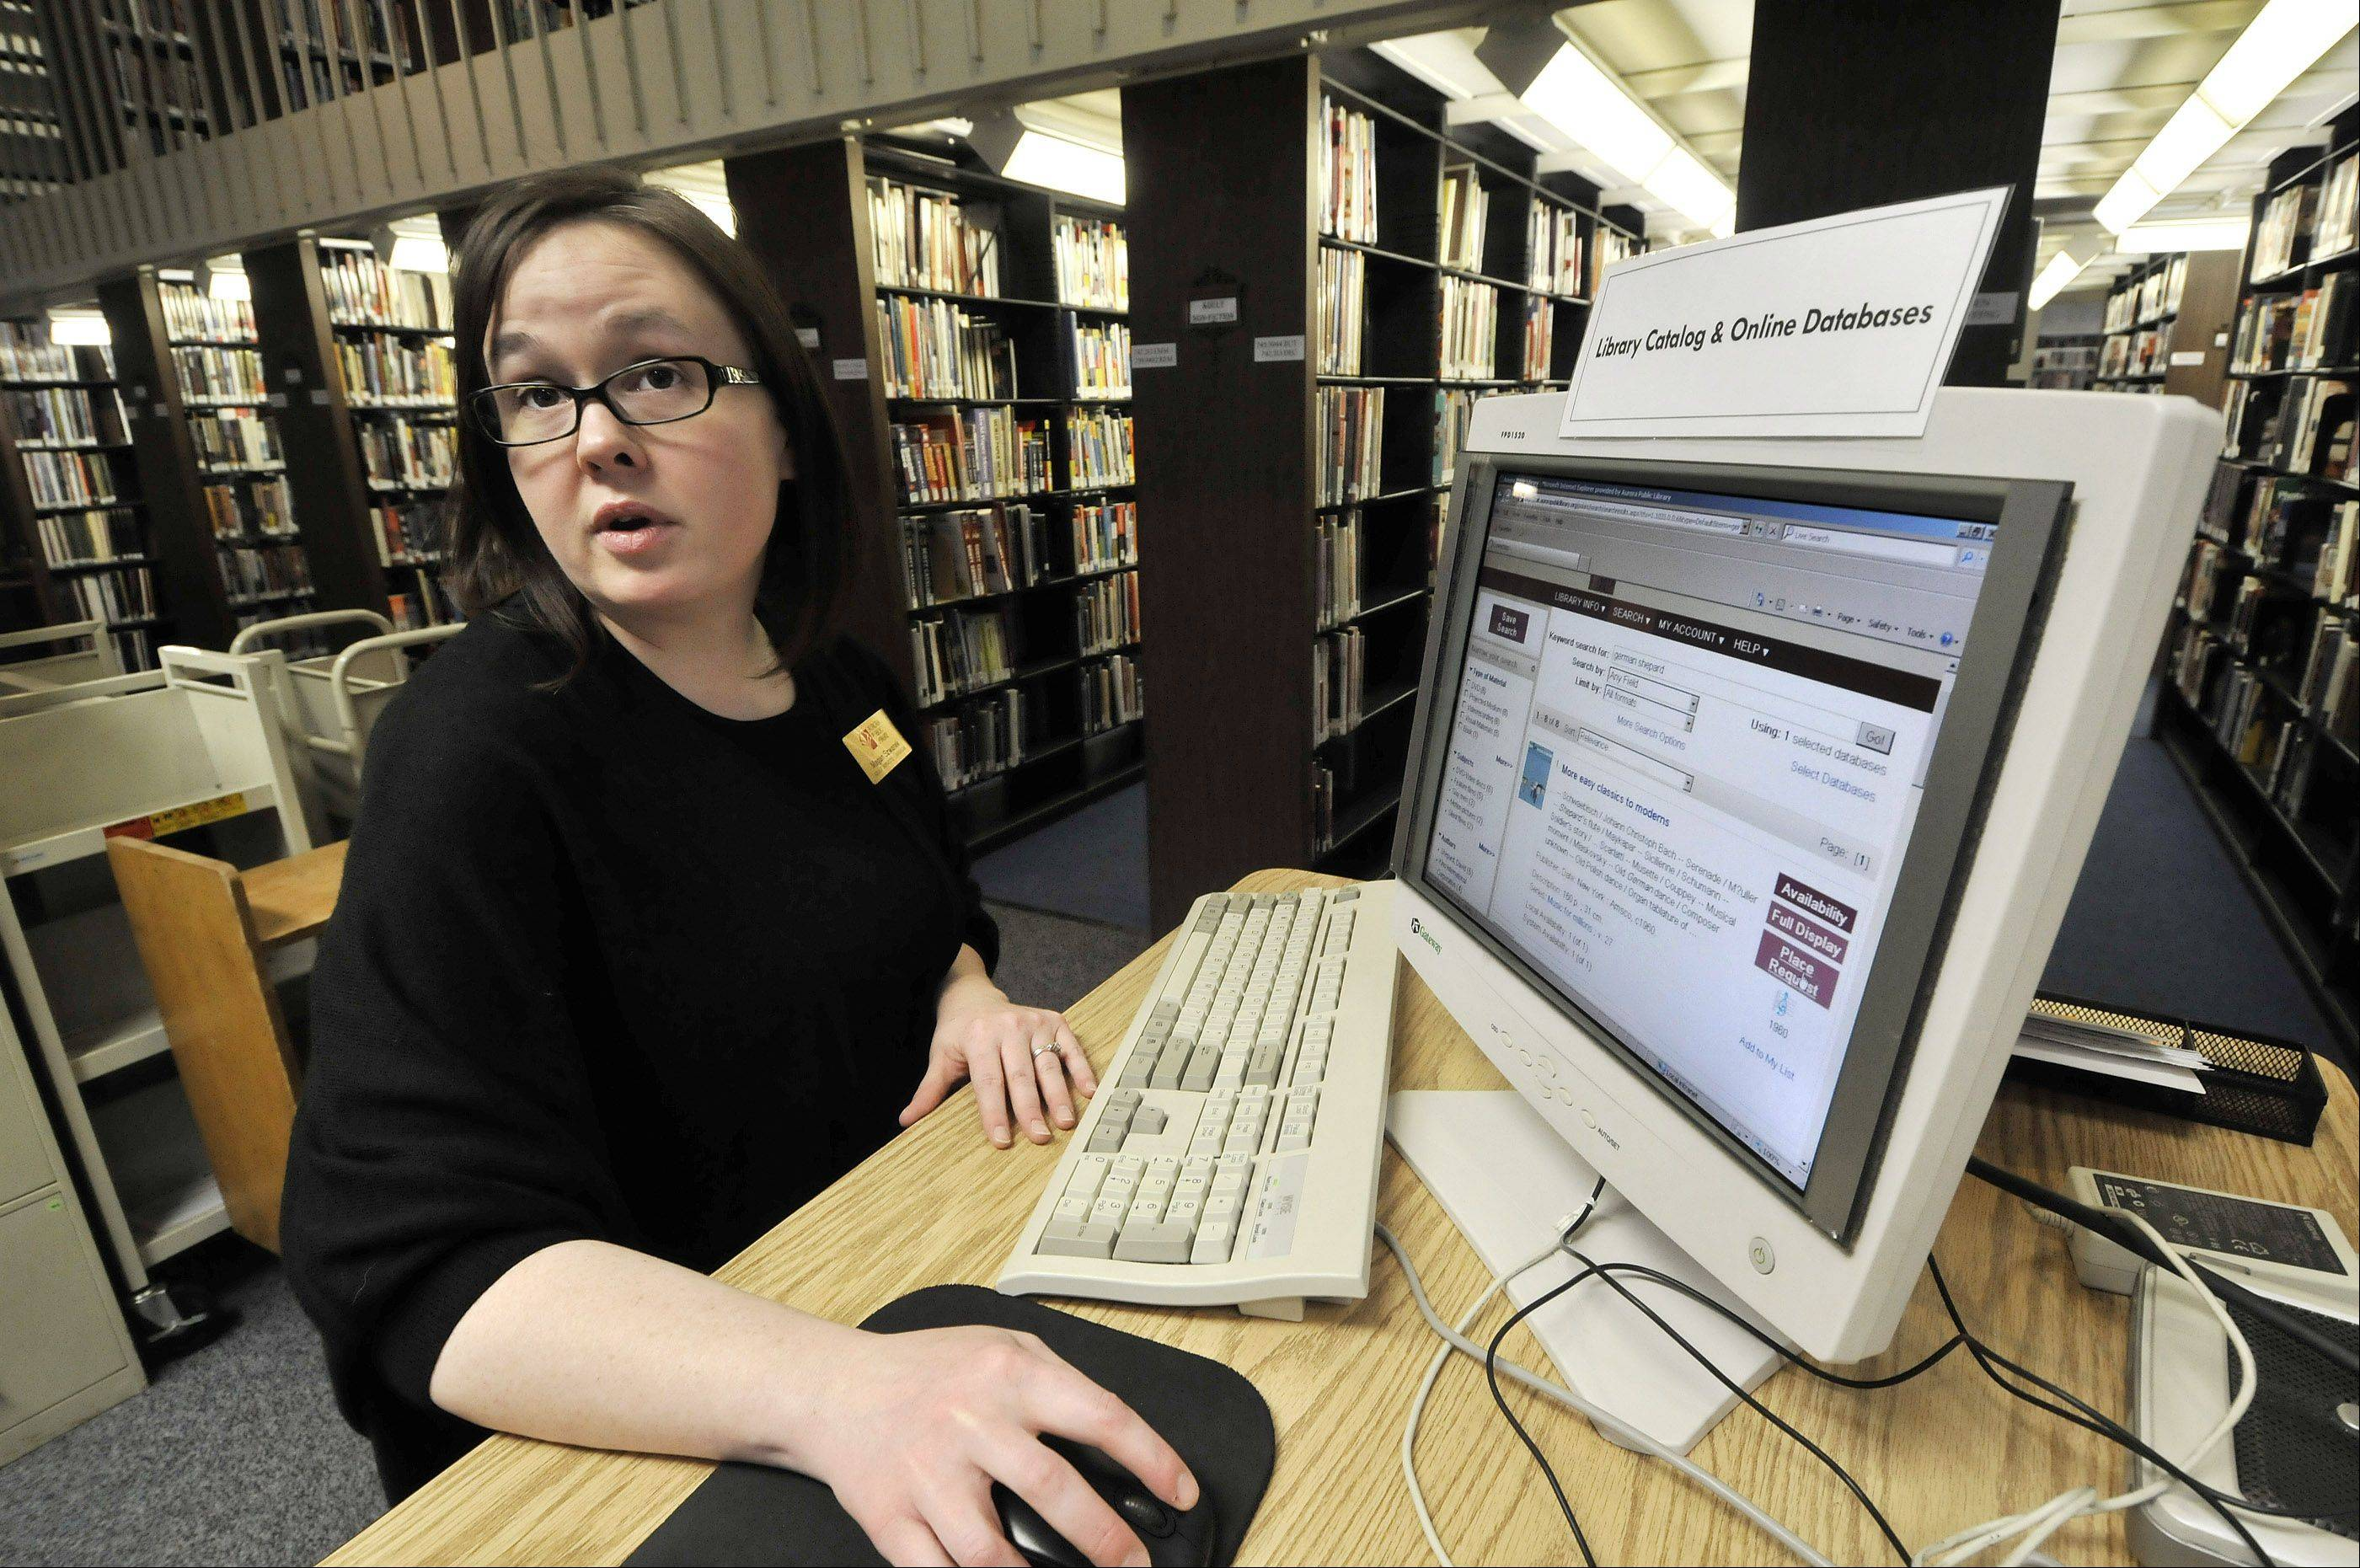 Librarian Magan Szwarek explains the Aurora Public Library's new online catalog, which began operation Thursday. Among other things, patrons can reserve books and audio books online and keep track of items they've read.